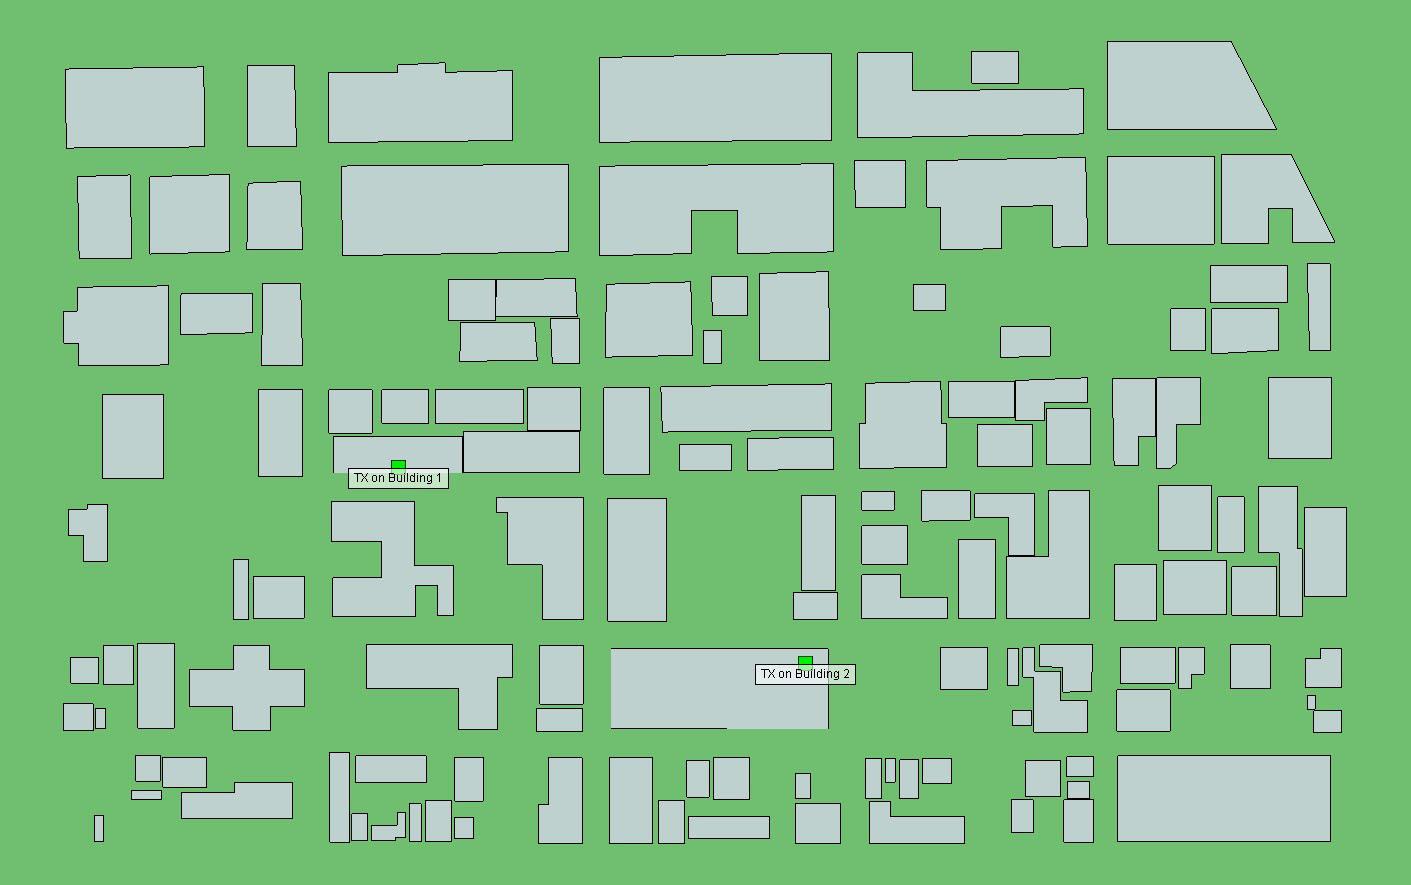 Figure 1  Transmitter locations within an urban environment represented by green boxes.